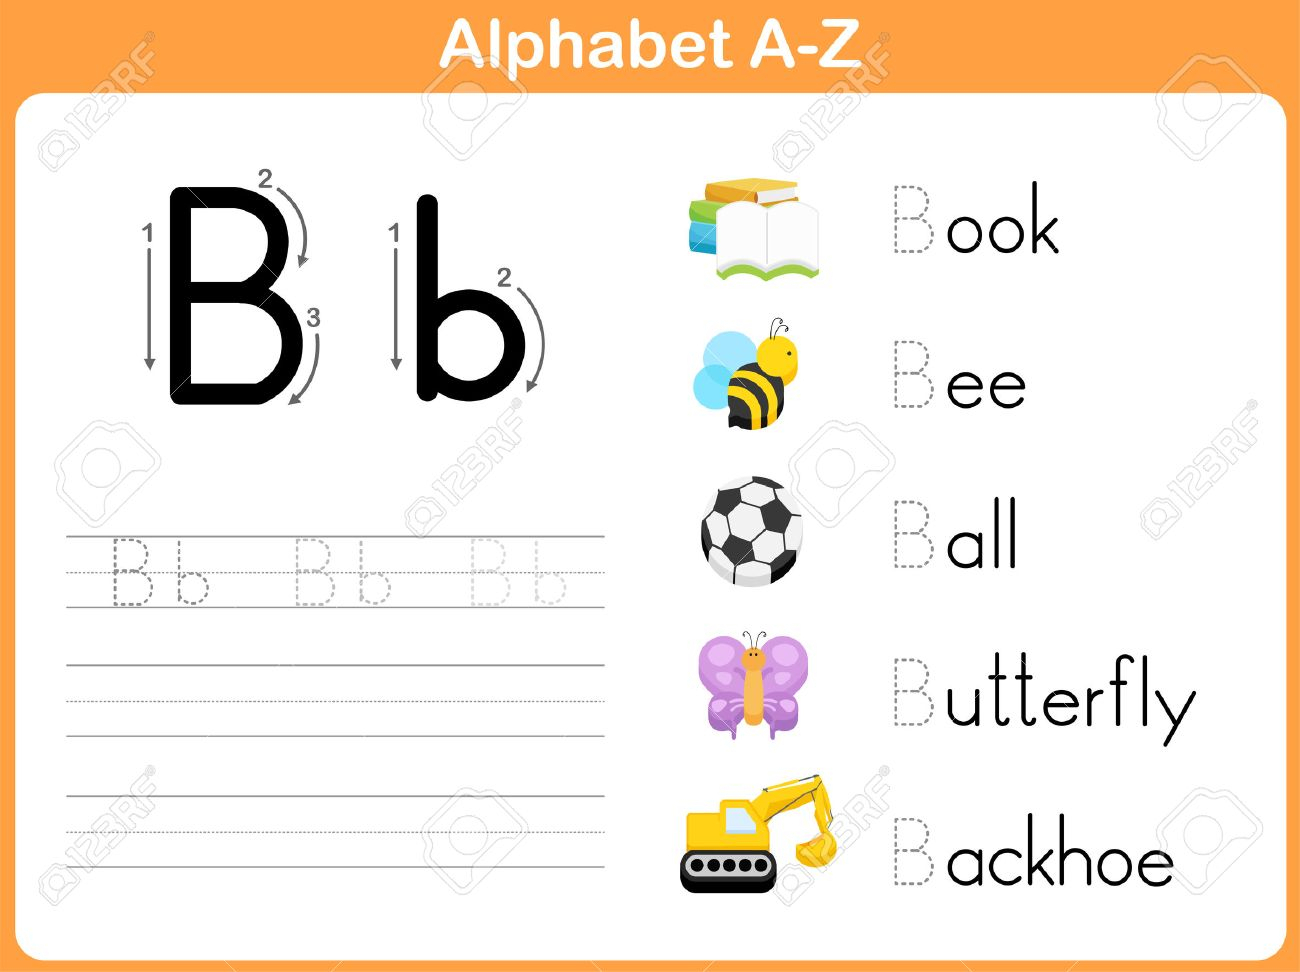 Alphabet Tracing Worksheet: Writing A-Z for A-Z Alphabet Tracing Worksheets